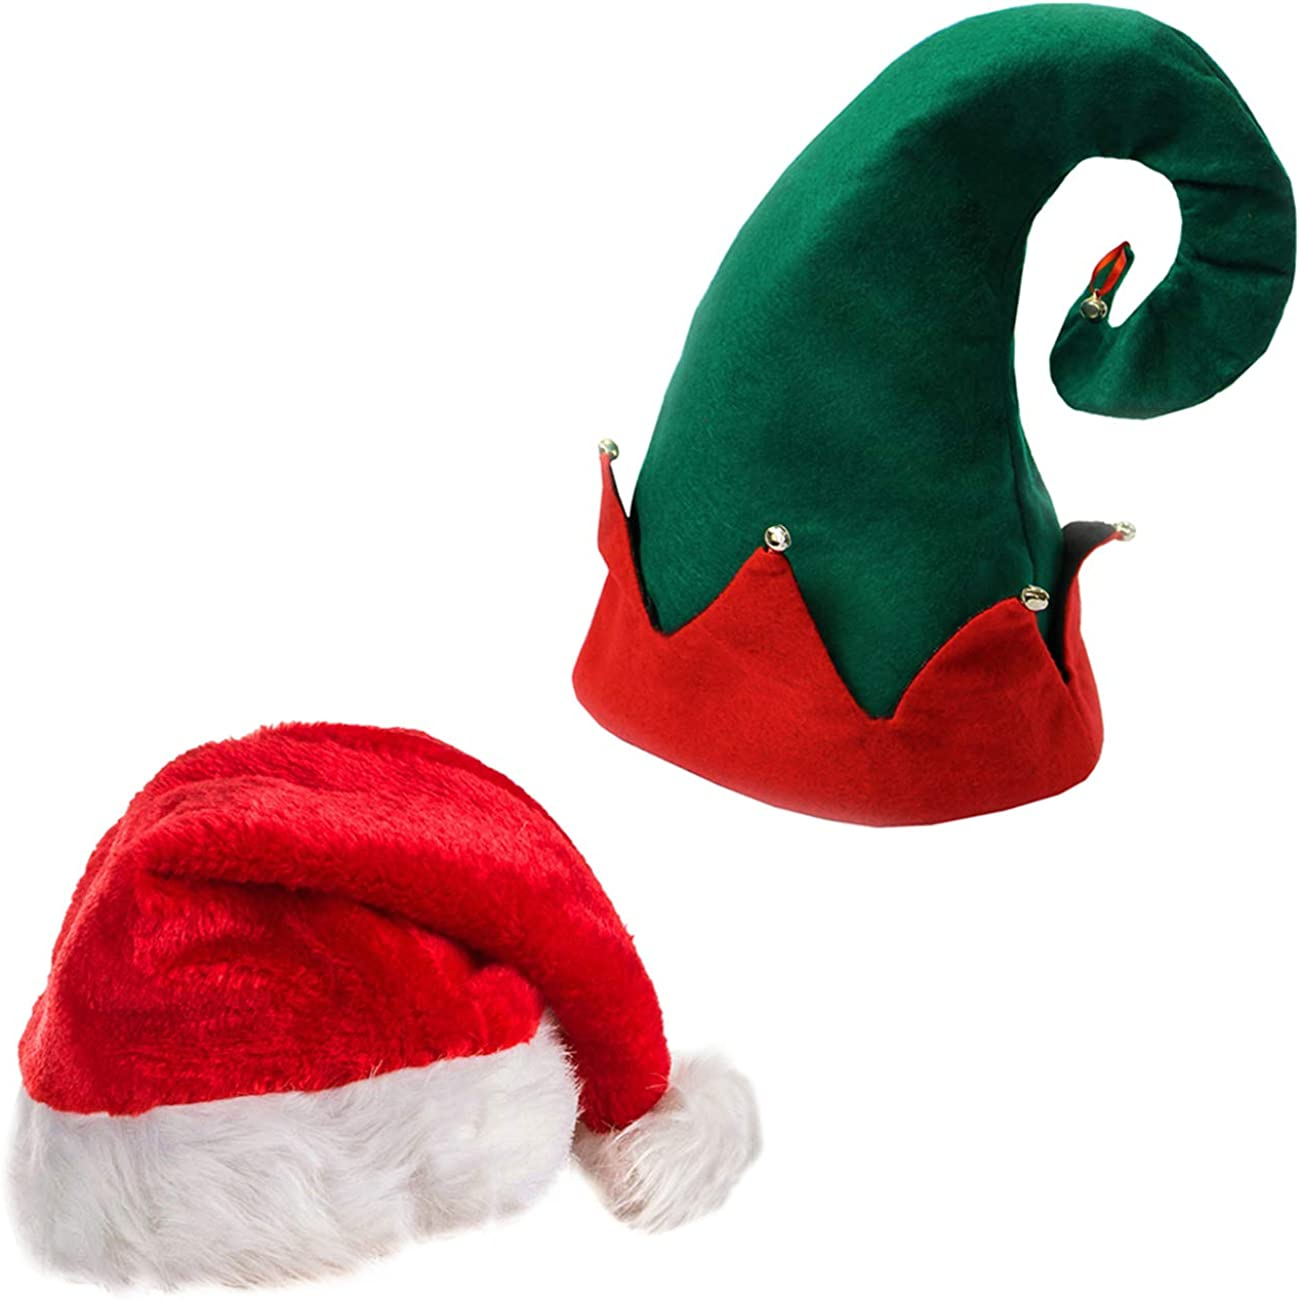 Plush Adult Christmas Hat w// Bells for Parades Santa Hat with Reindeer Antlers